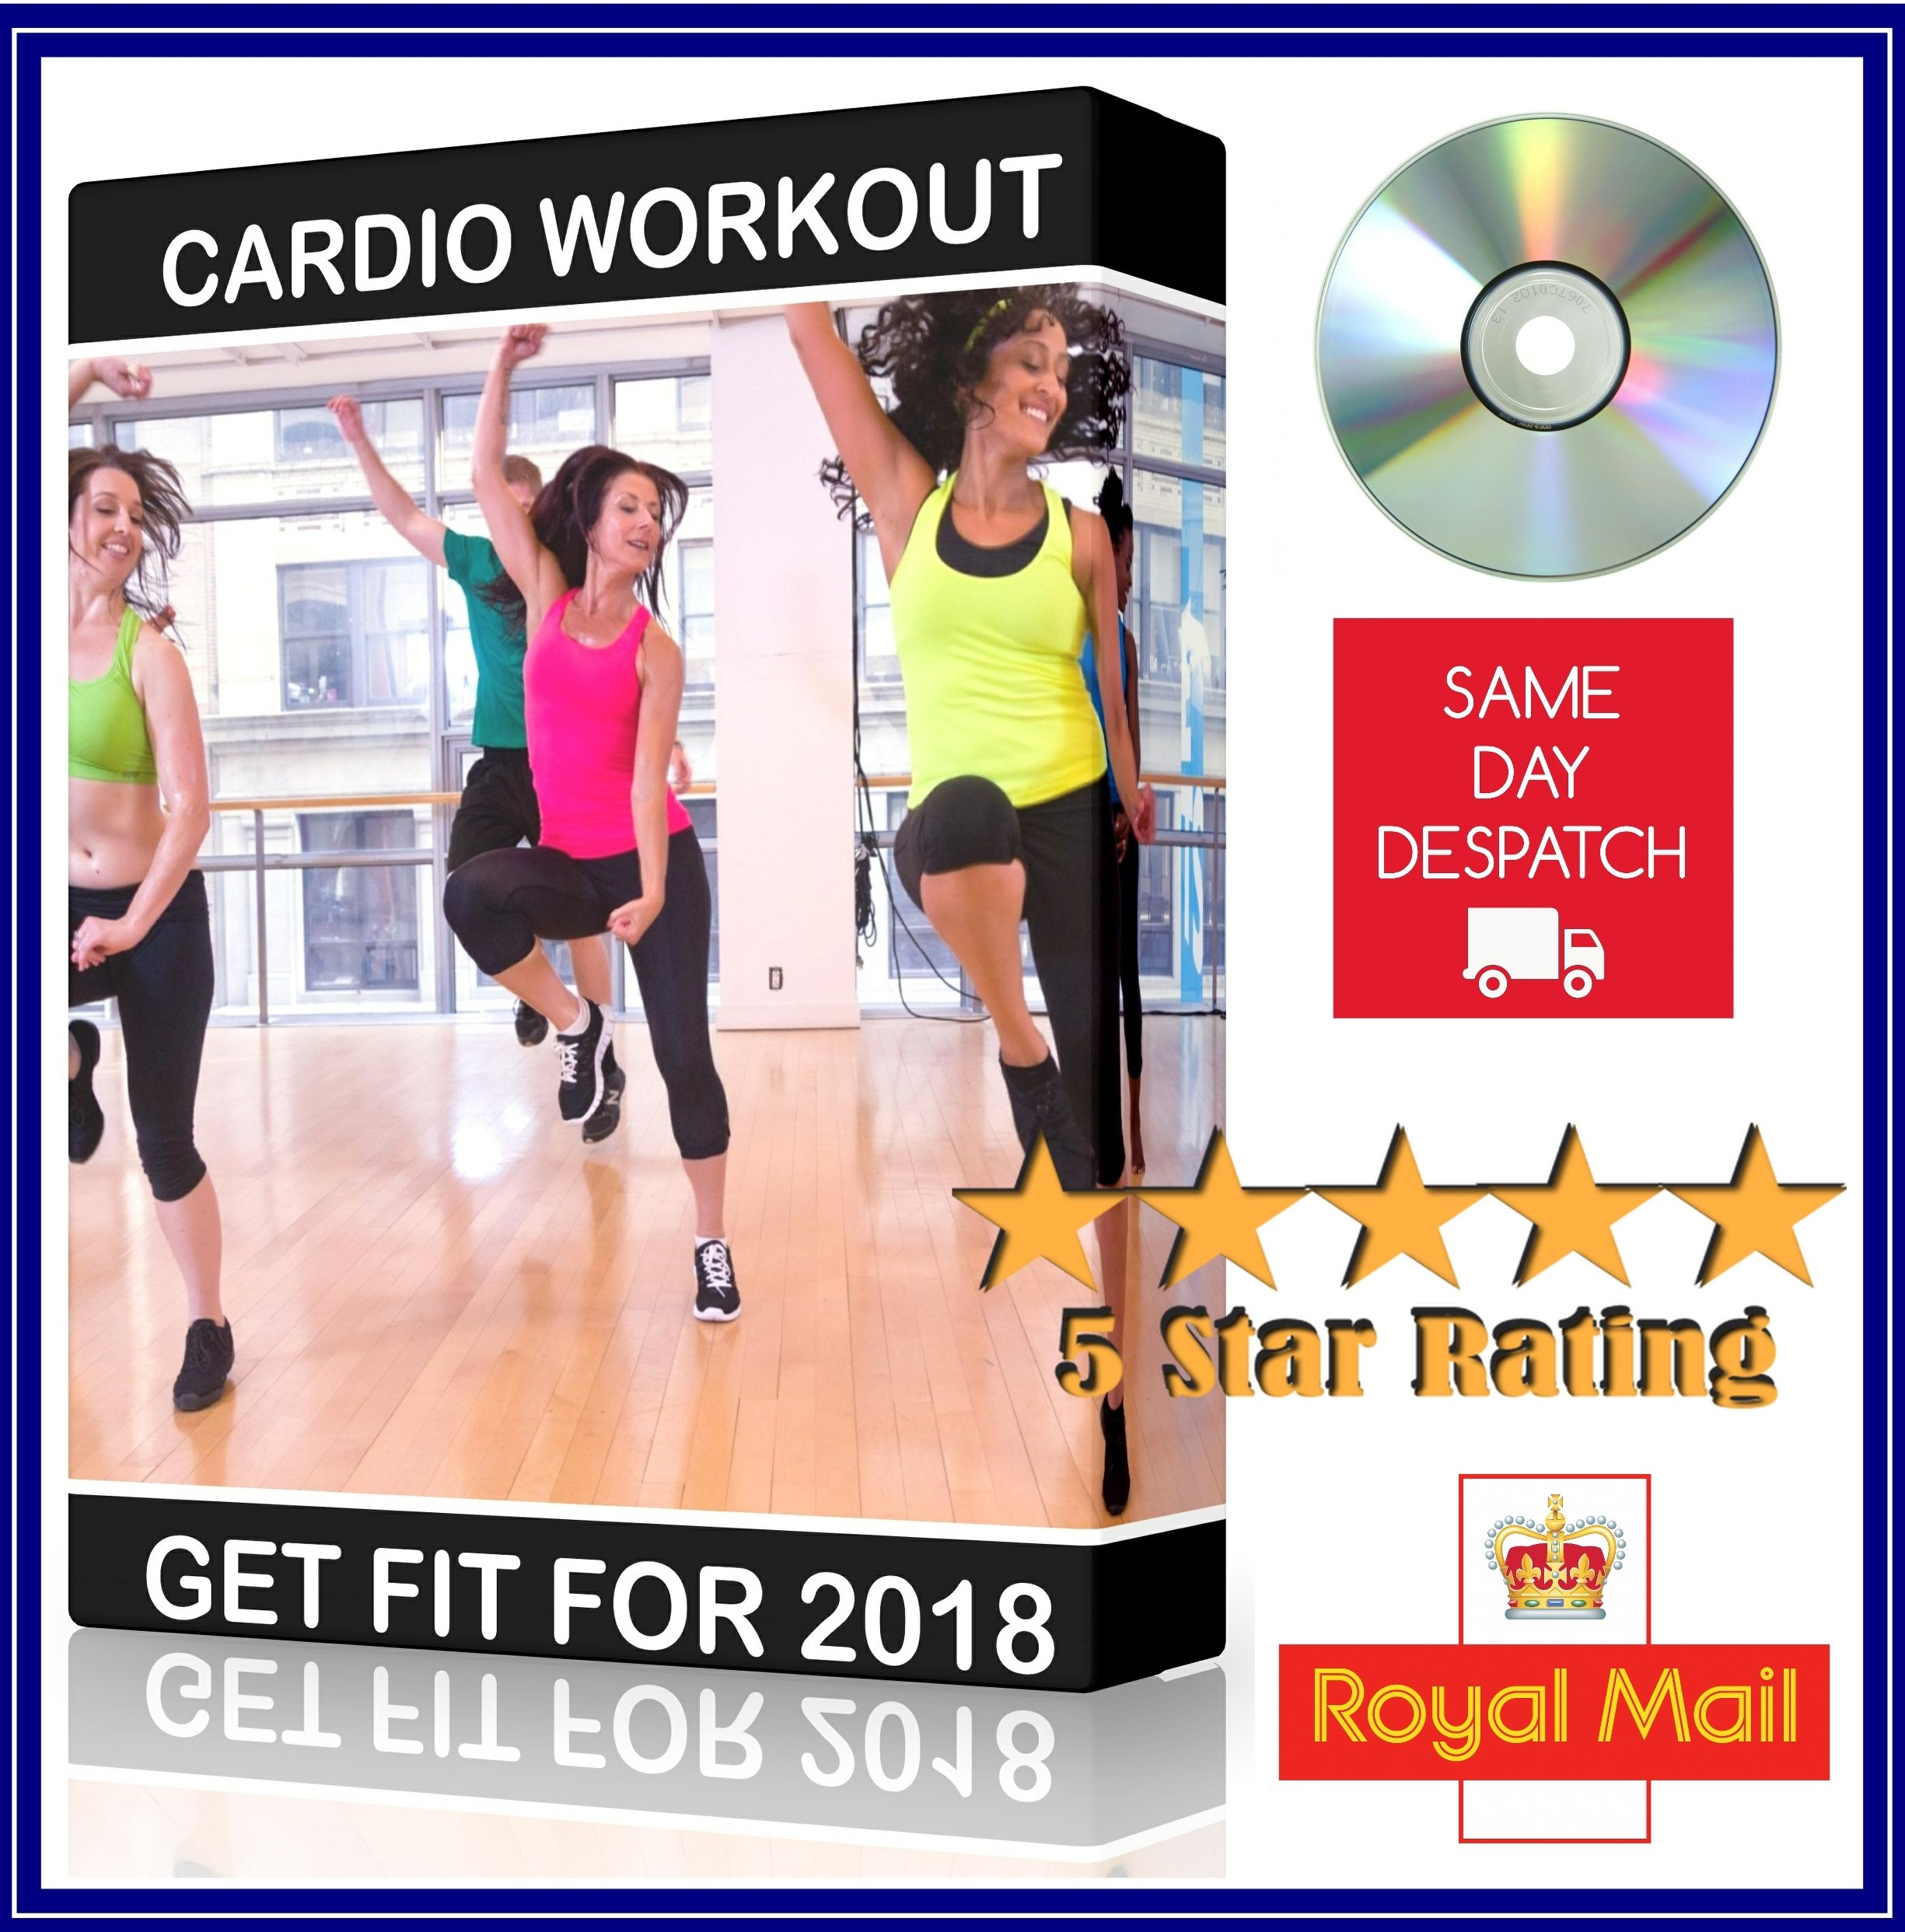 BEGINNERS CARDIO WORKOUT LEARN TOTAL BODY WORKOUT FOR